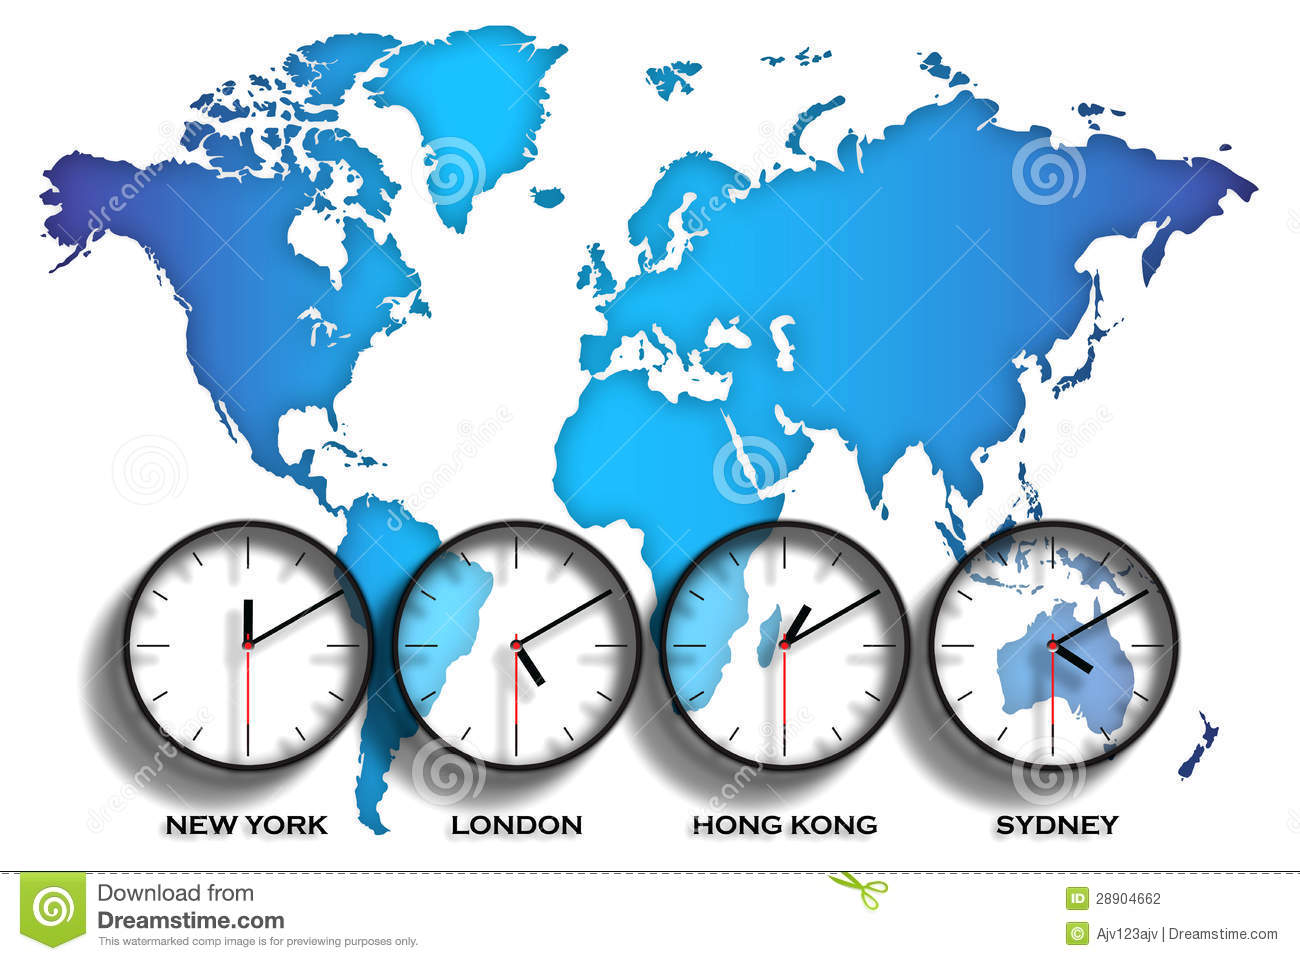 World map time zones stock illustration illustration of sydney world map time zones gumiabroncs Gallery